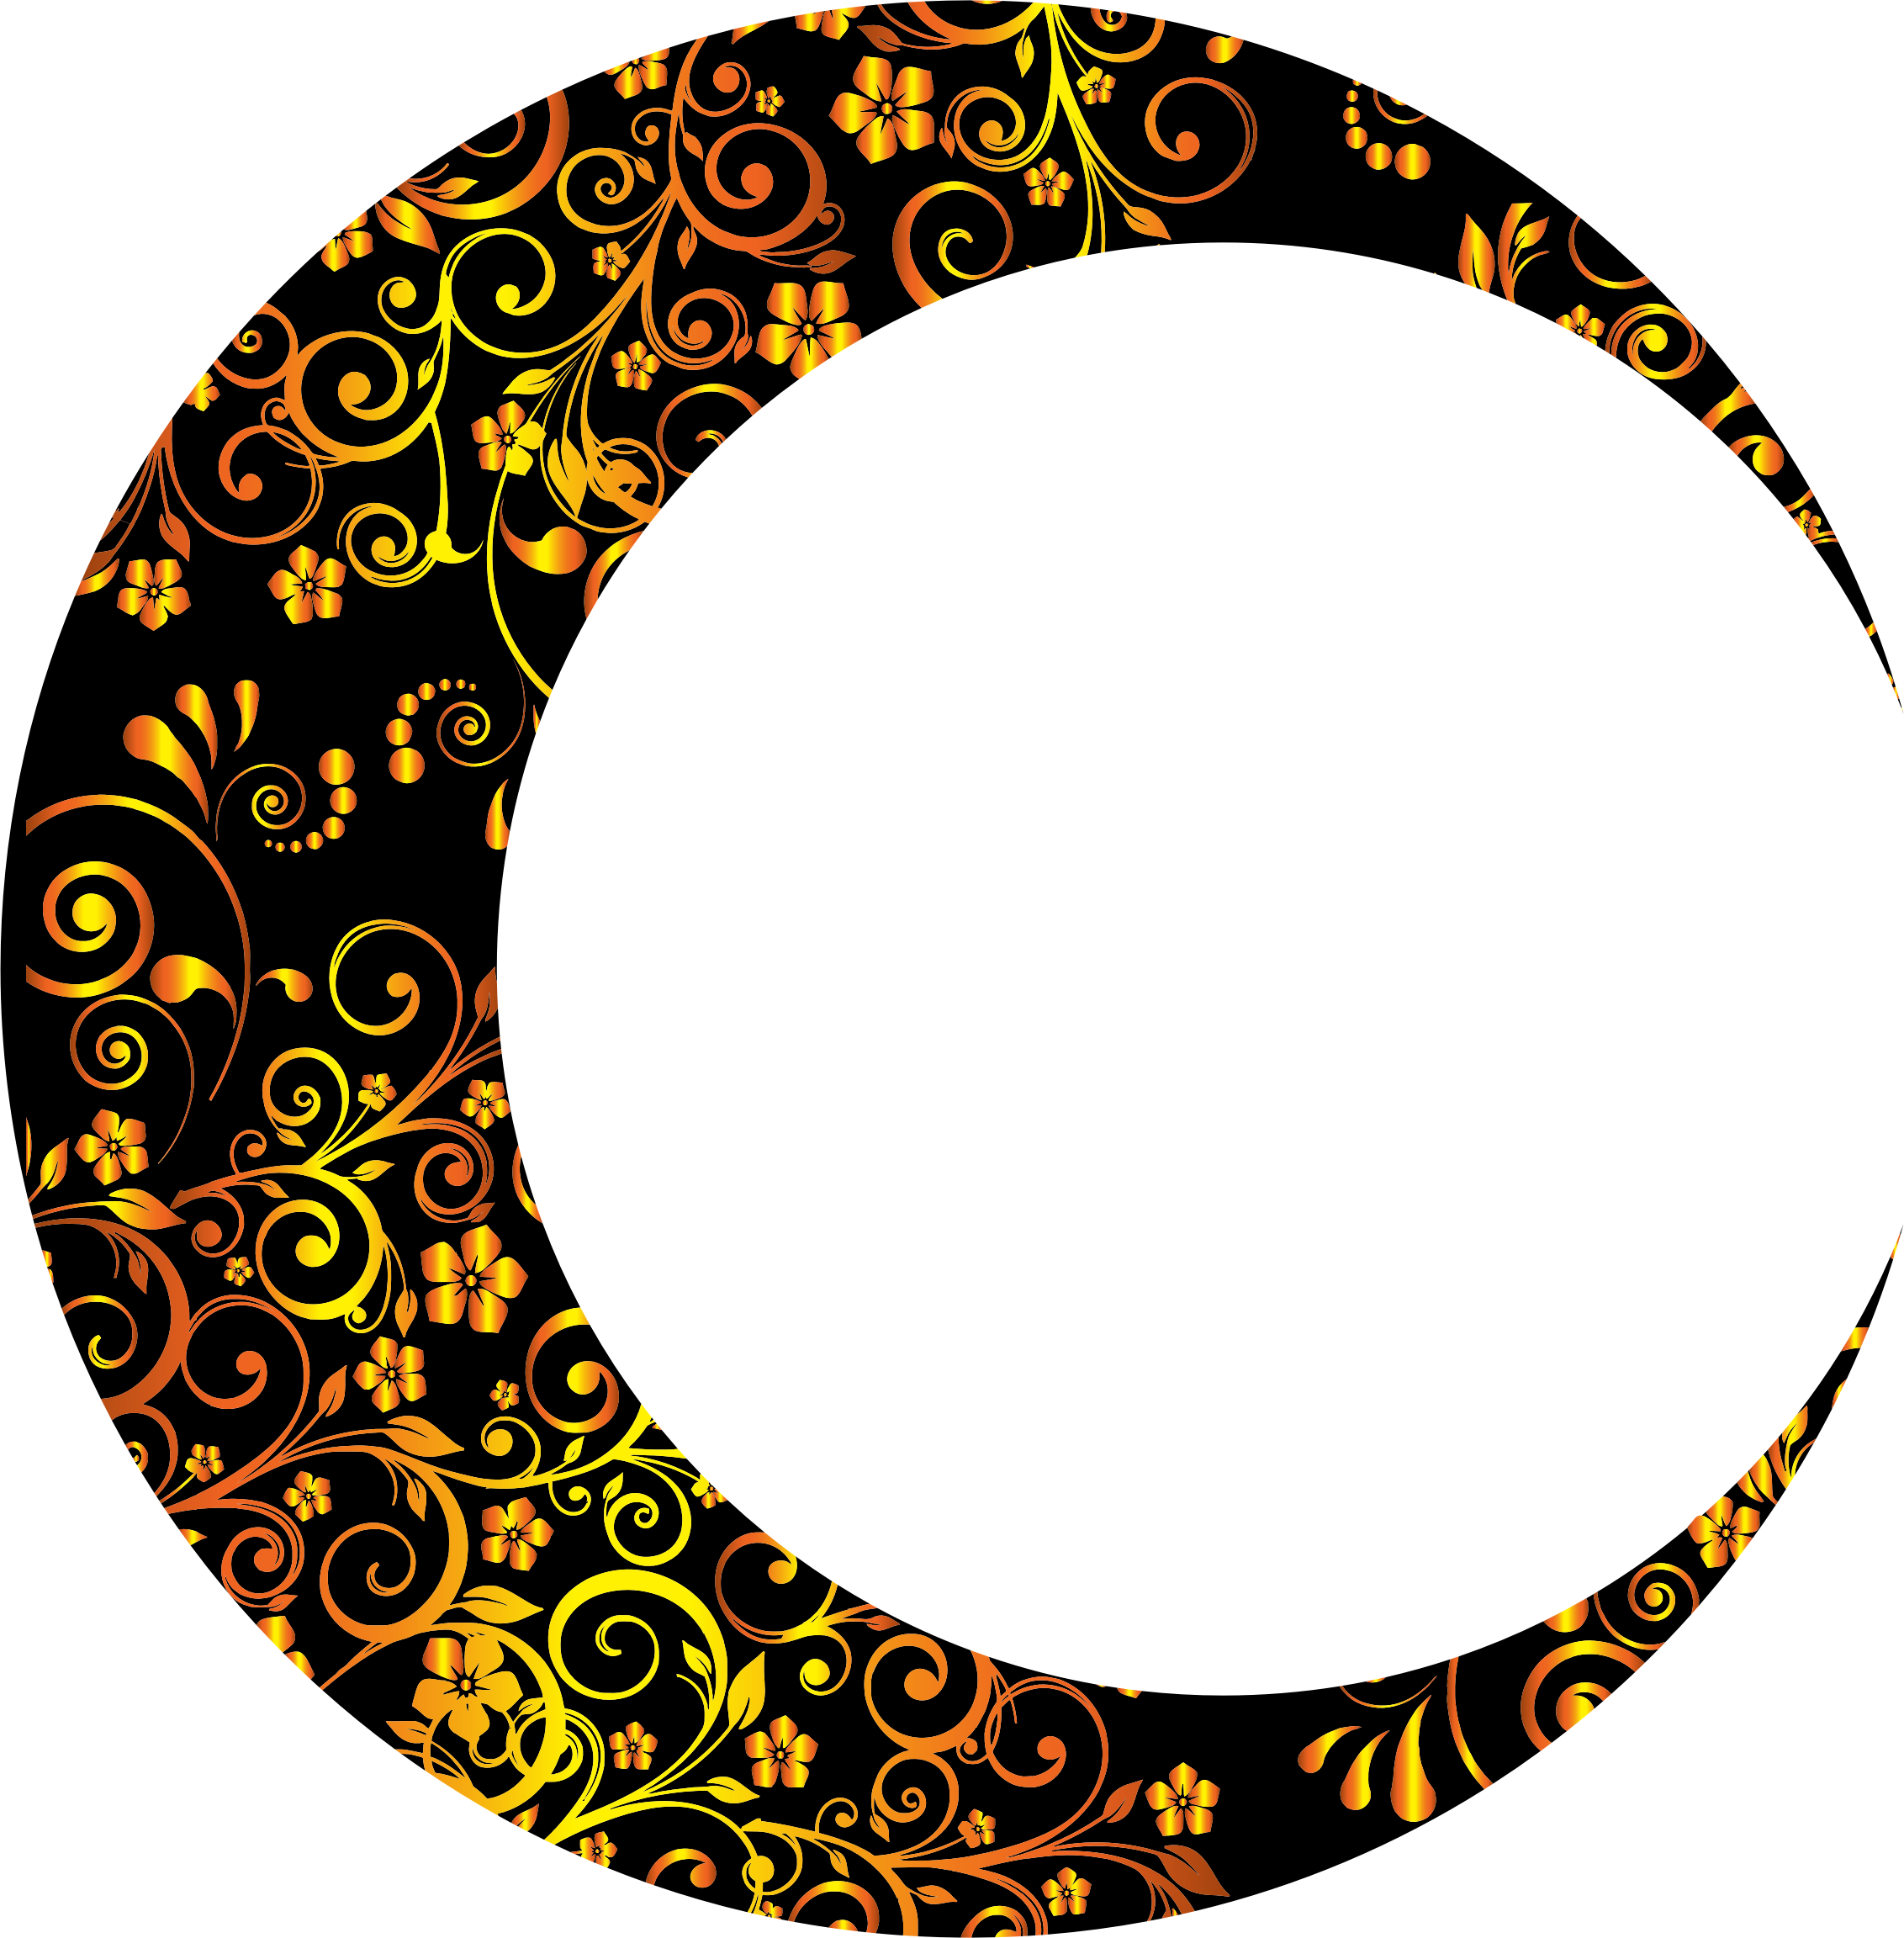 6 clipart gold number. Floral crescent moon mark